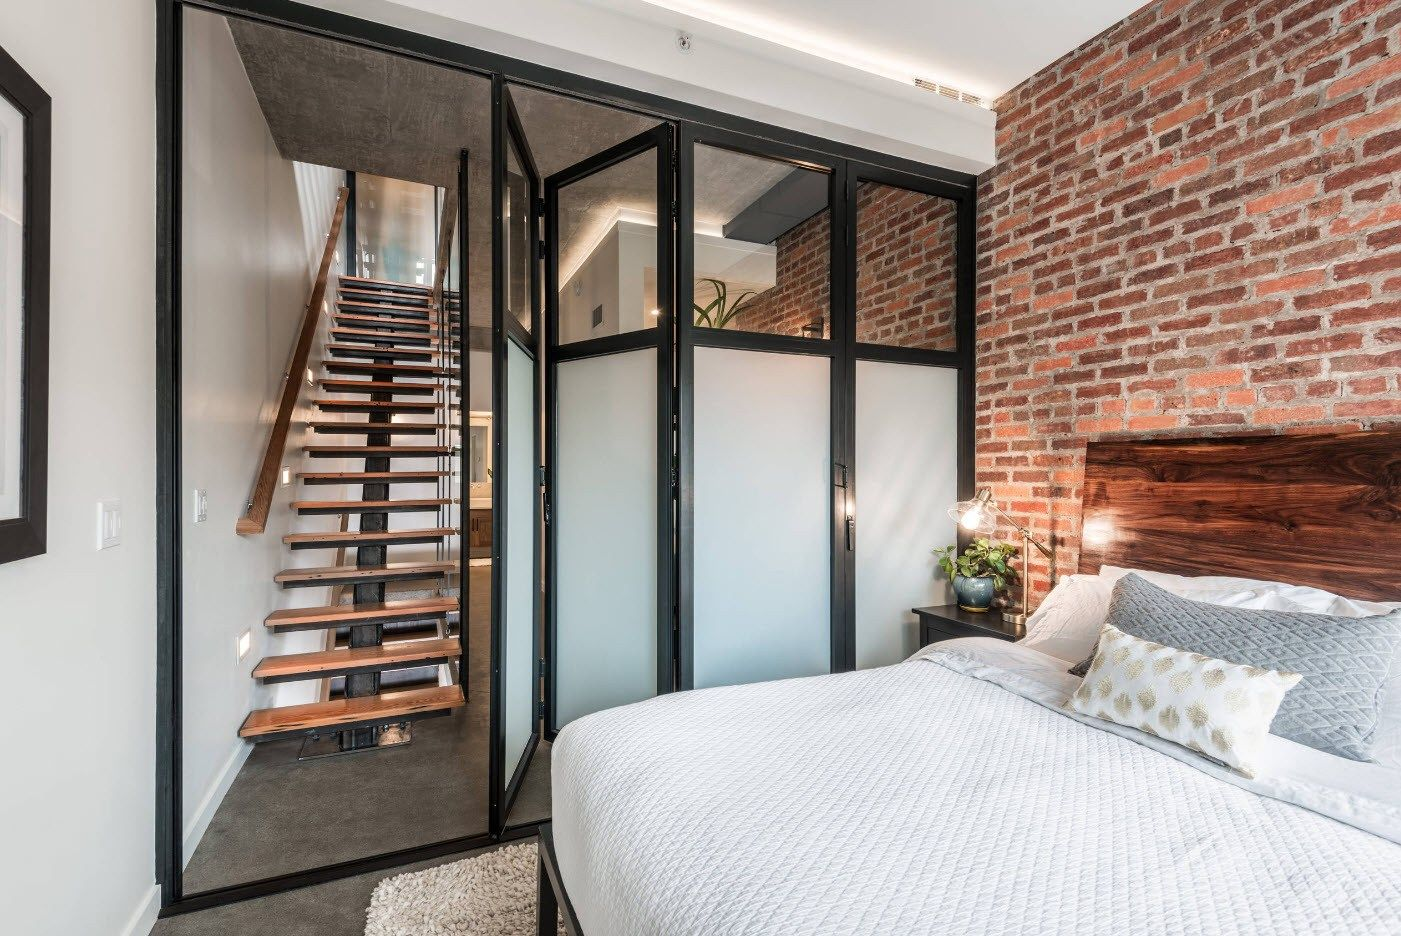 Industrial touc of the modern apartment with brickwork in the bedroom zone